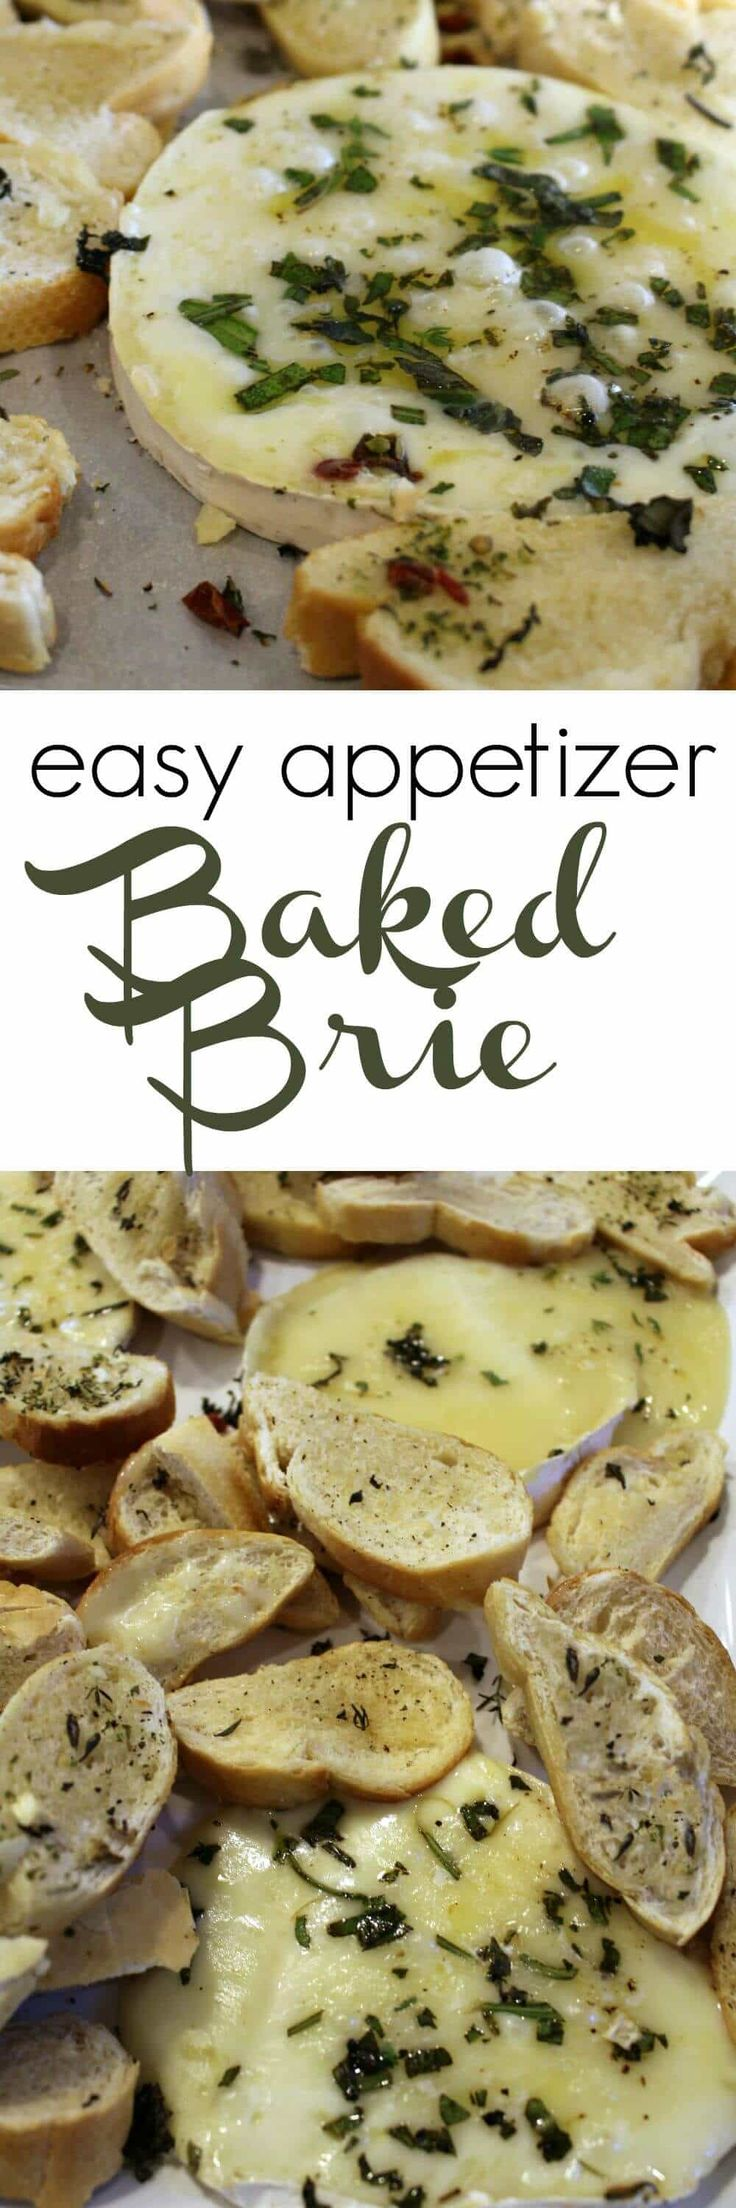 How To Make Baked Brie Appetizer - Princess Pinky Girl